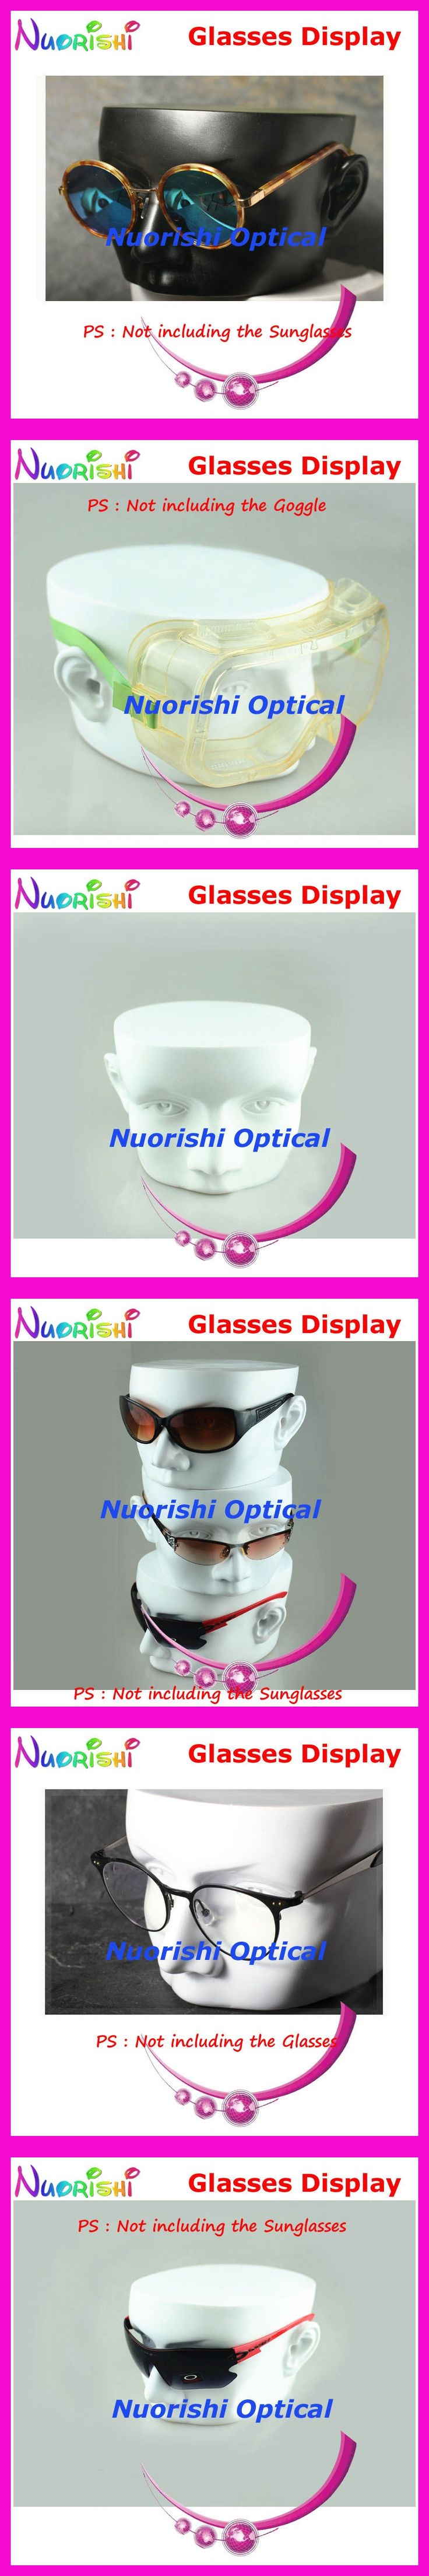 8 Colors Fashion Head Mold Display Stands Model For Optical Eyeglass Sunglasses Eyewear Glasses Store Shop CK102 Free Shipping